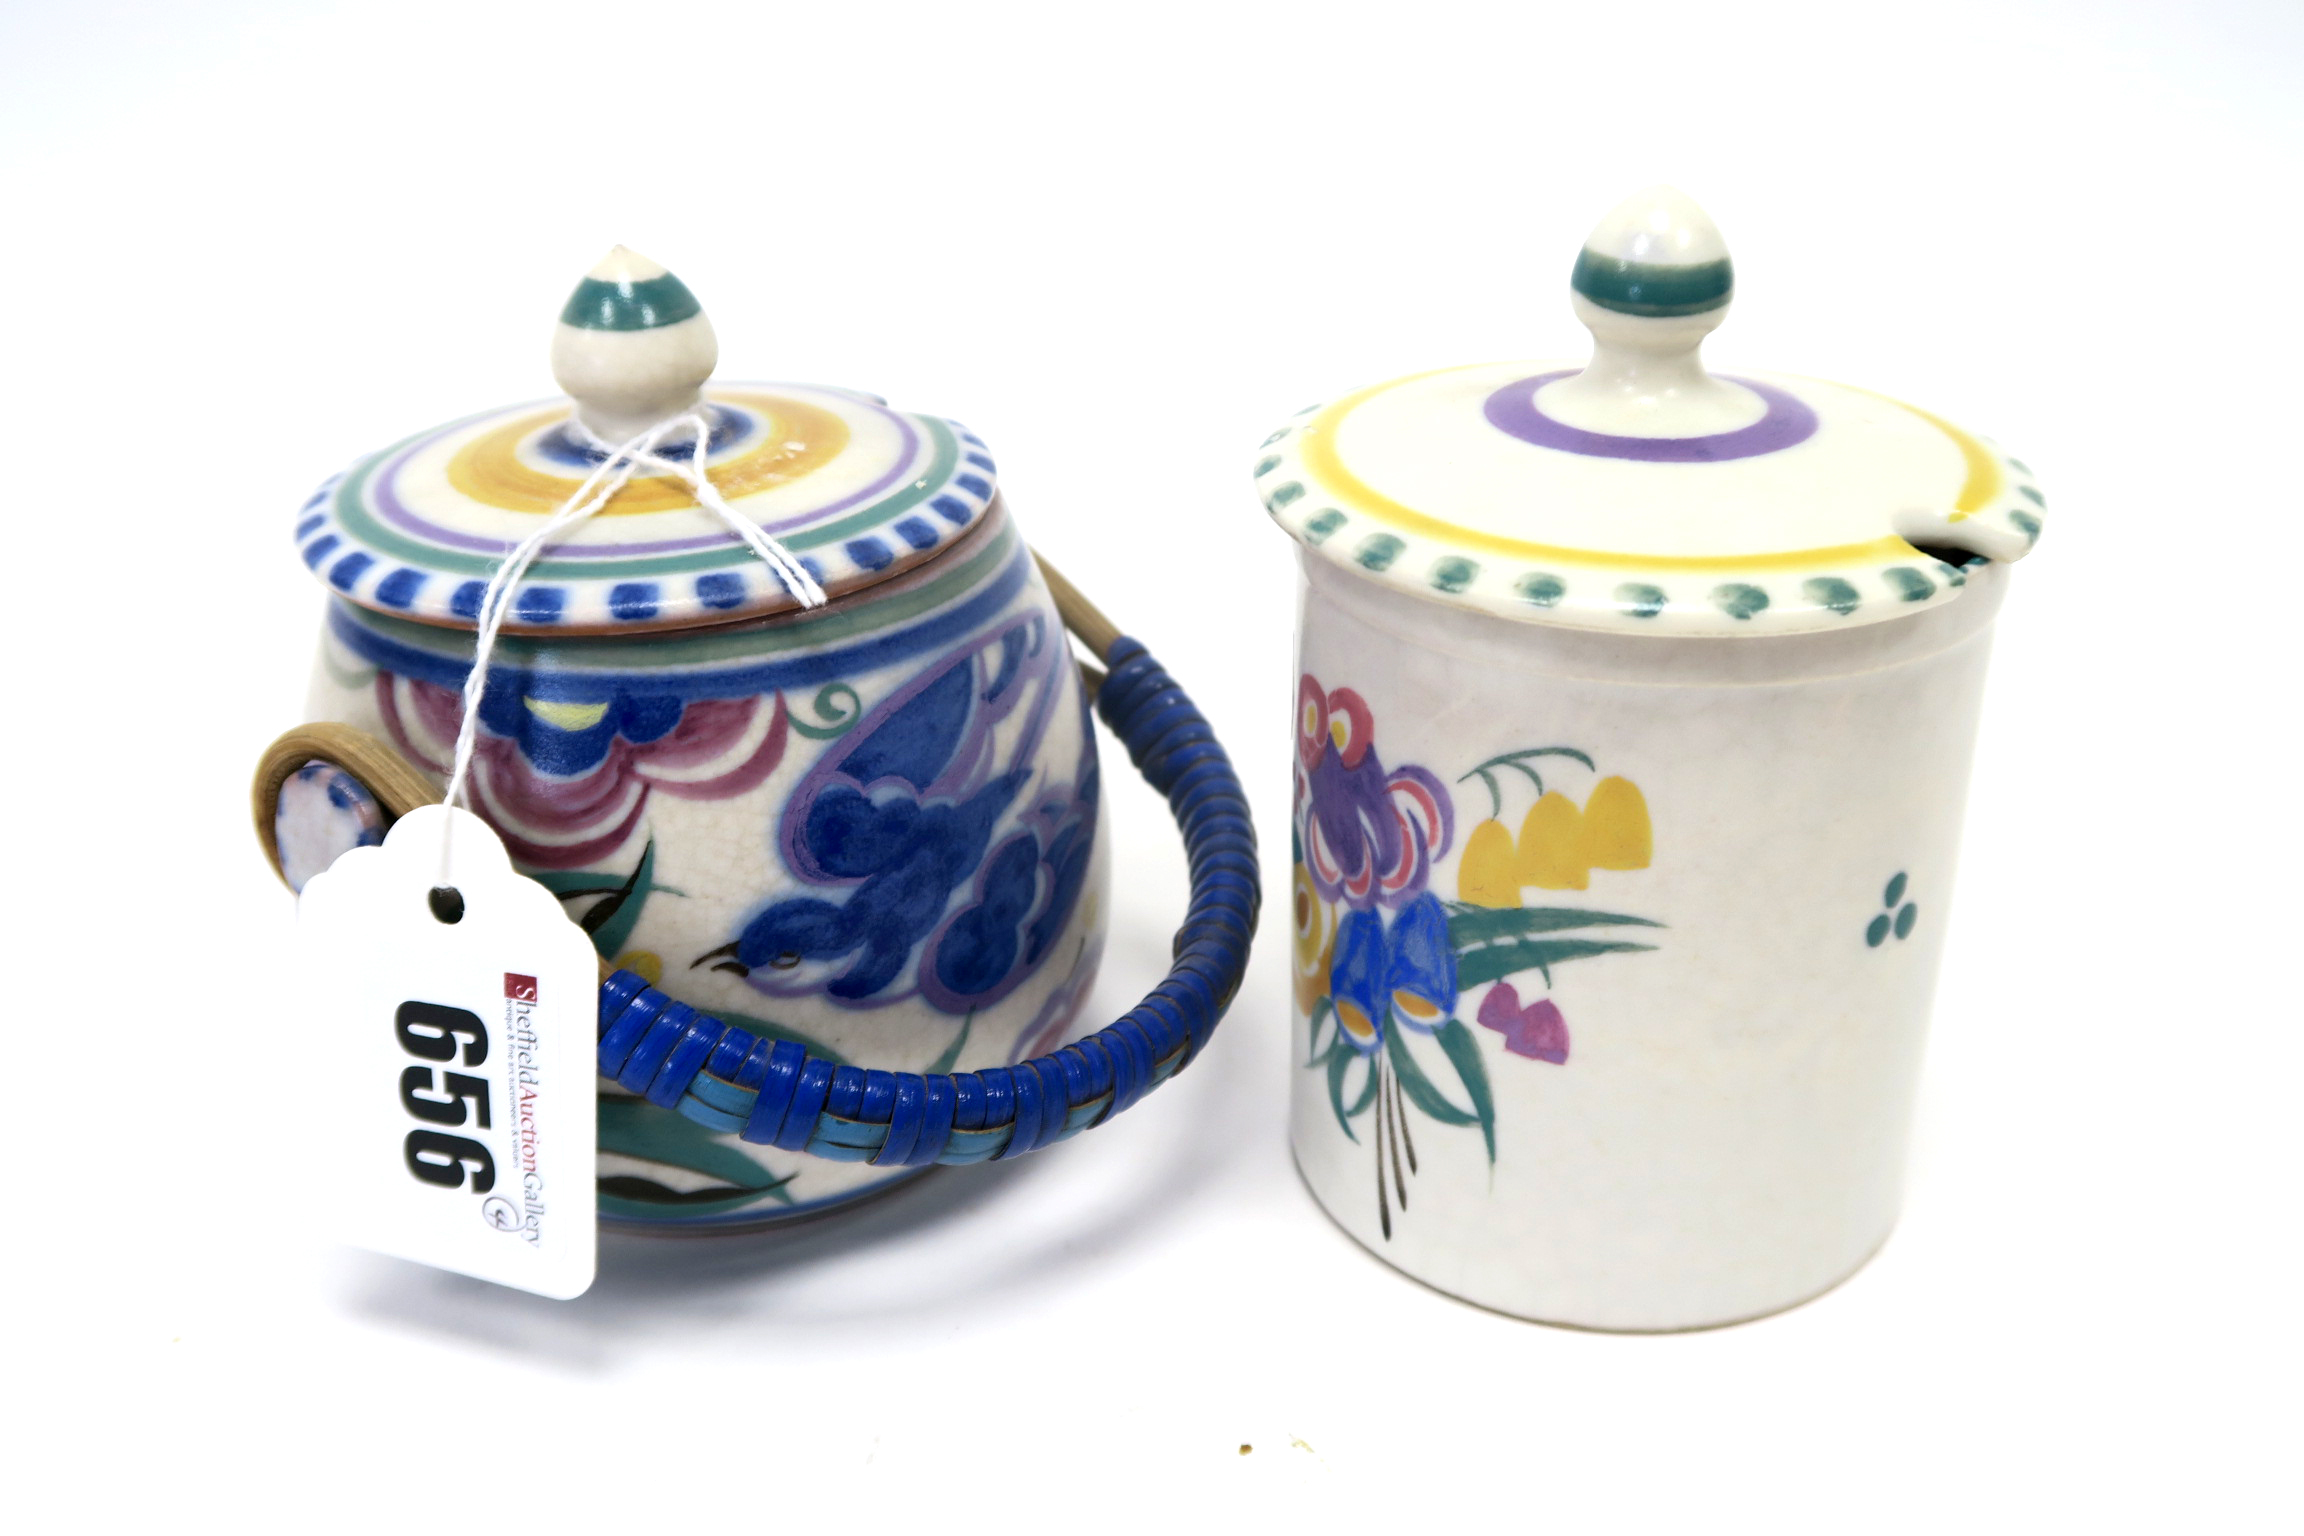 Lot 656 - A Carter, Stabler and Adams Poole Pottery Red Earthenware Jam Pot and Cover, painted in the 'Blue